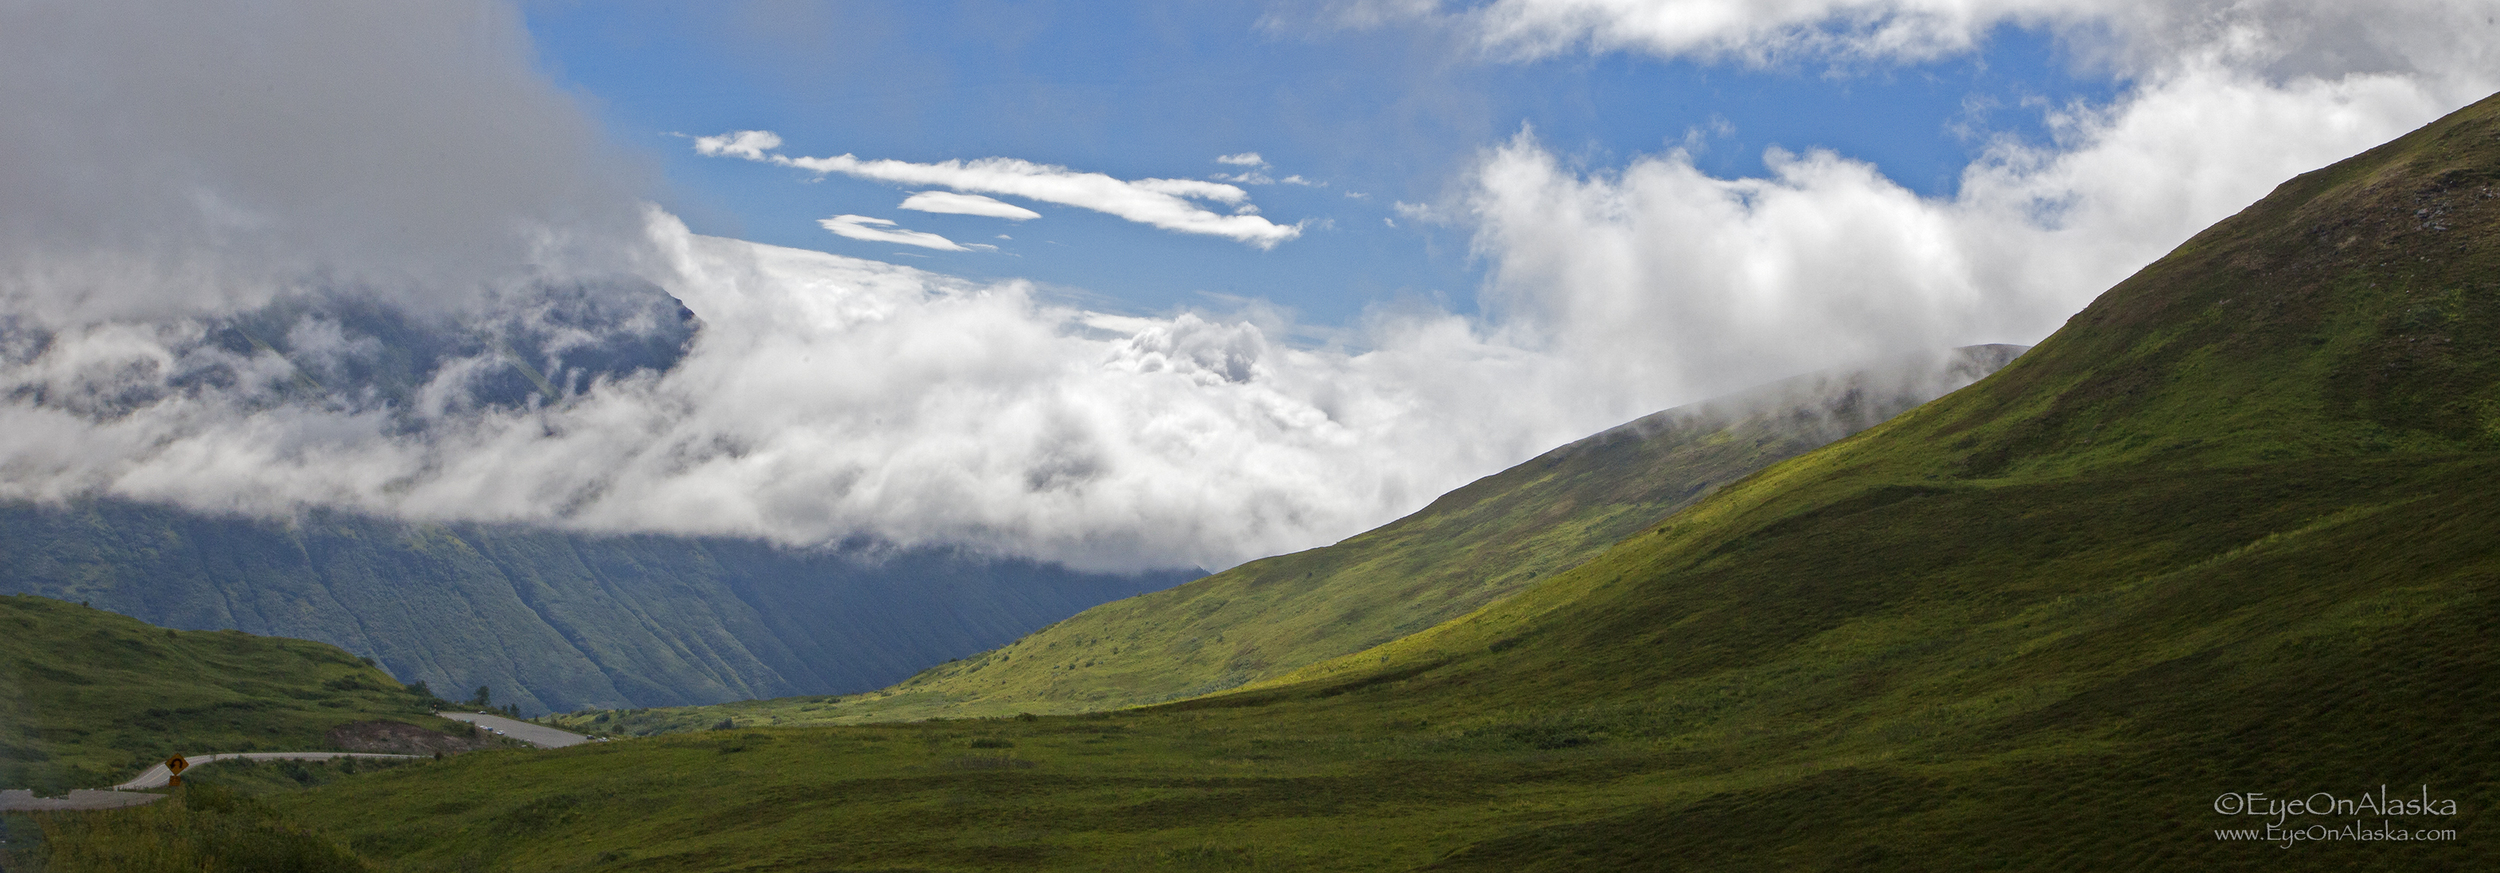 The Palmer side of Hatcher Pass.